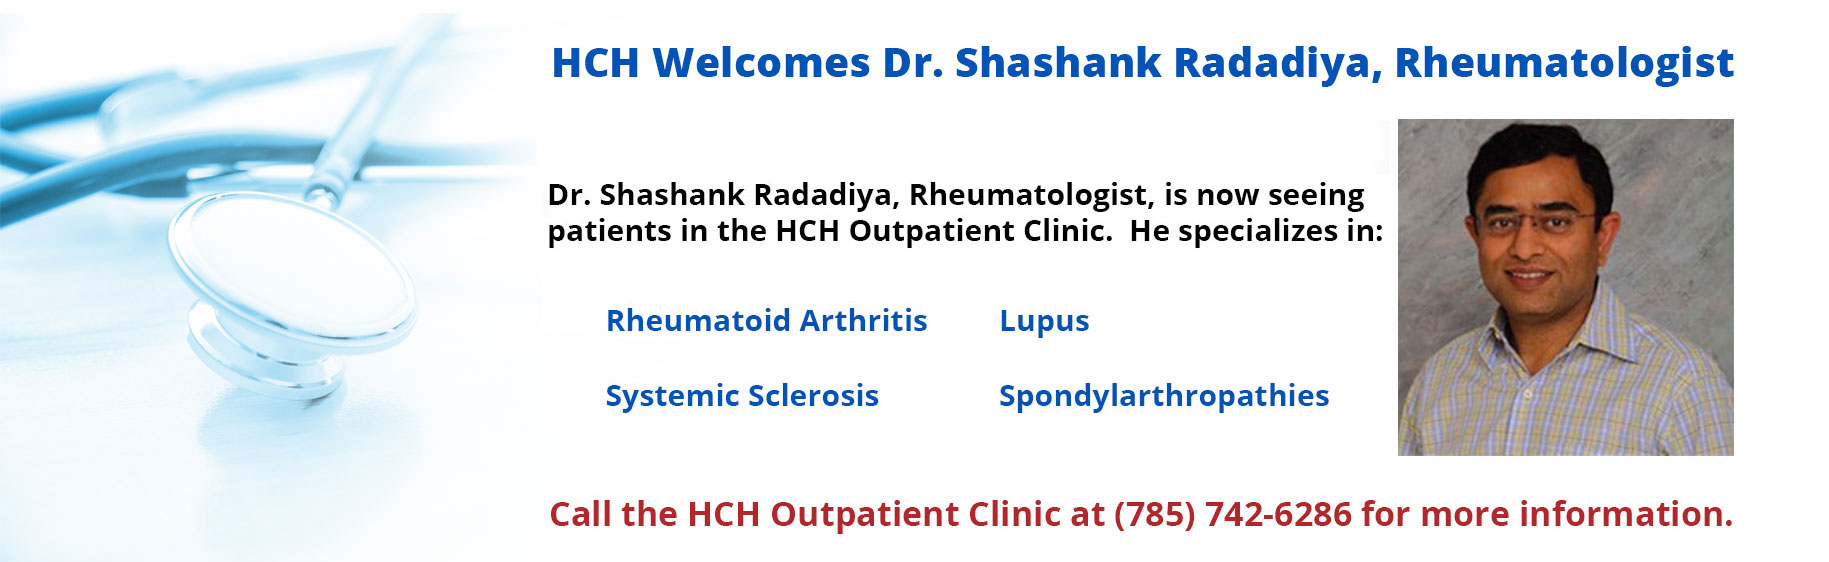 HCH welcomes Dr. Shashank Radadiya, Rheumatologist. Dr. Shashank Radadiya is now seeing patients in the HCH outpatient clinic.